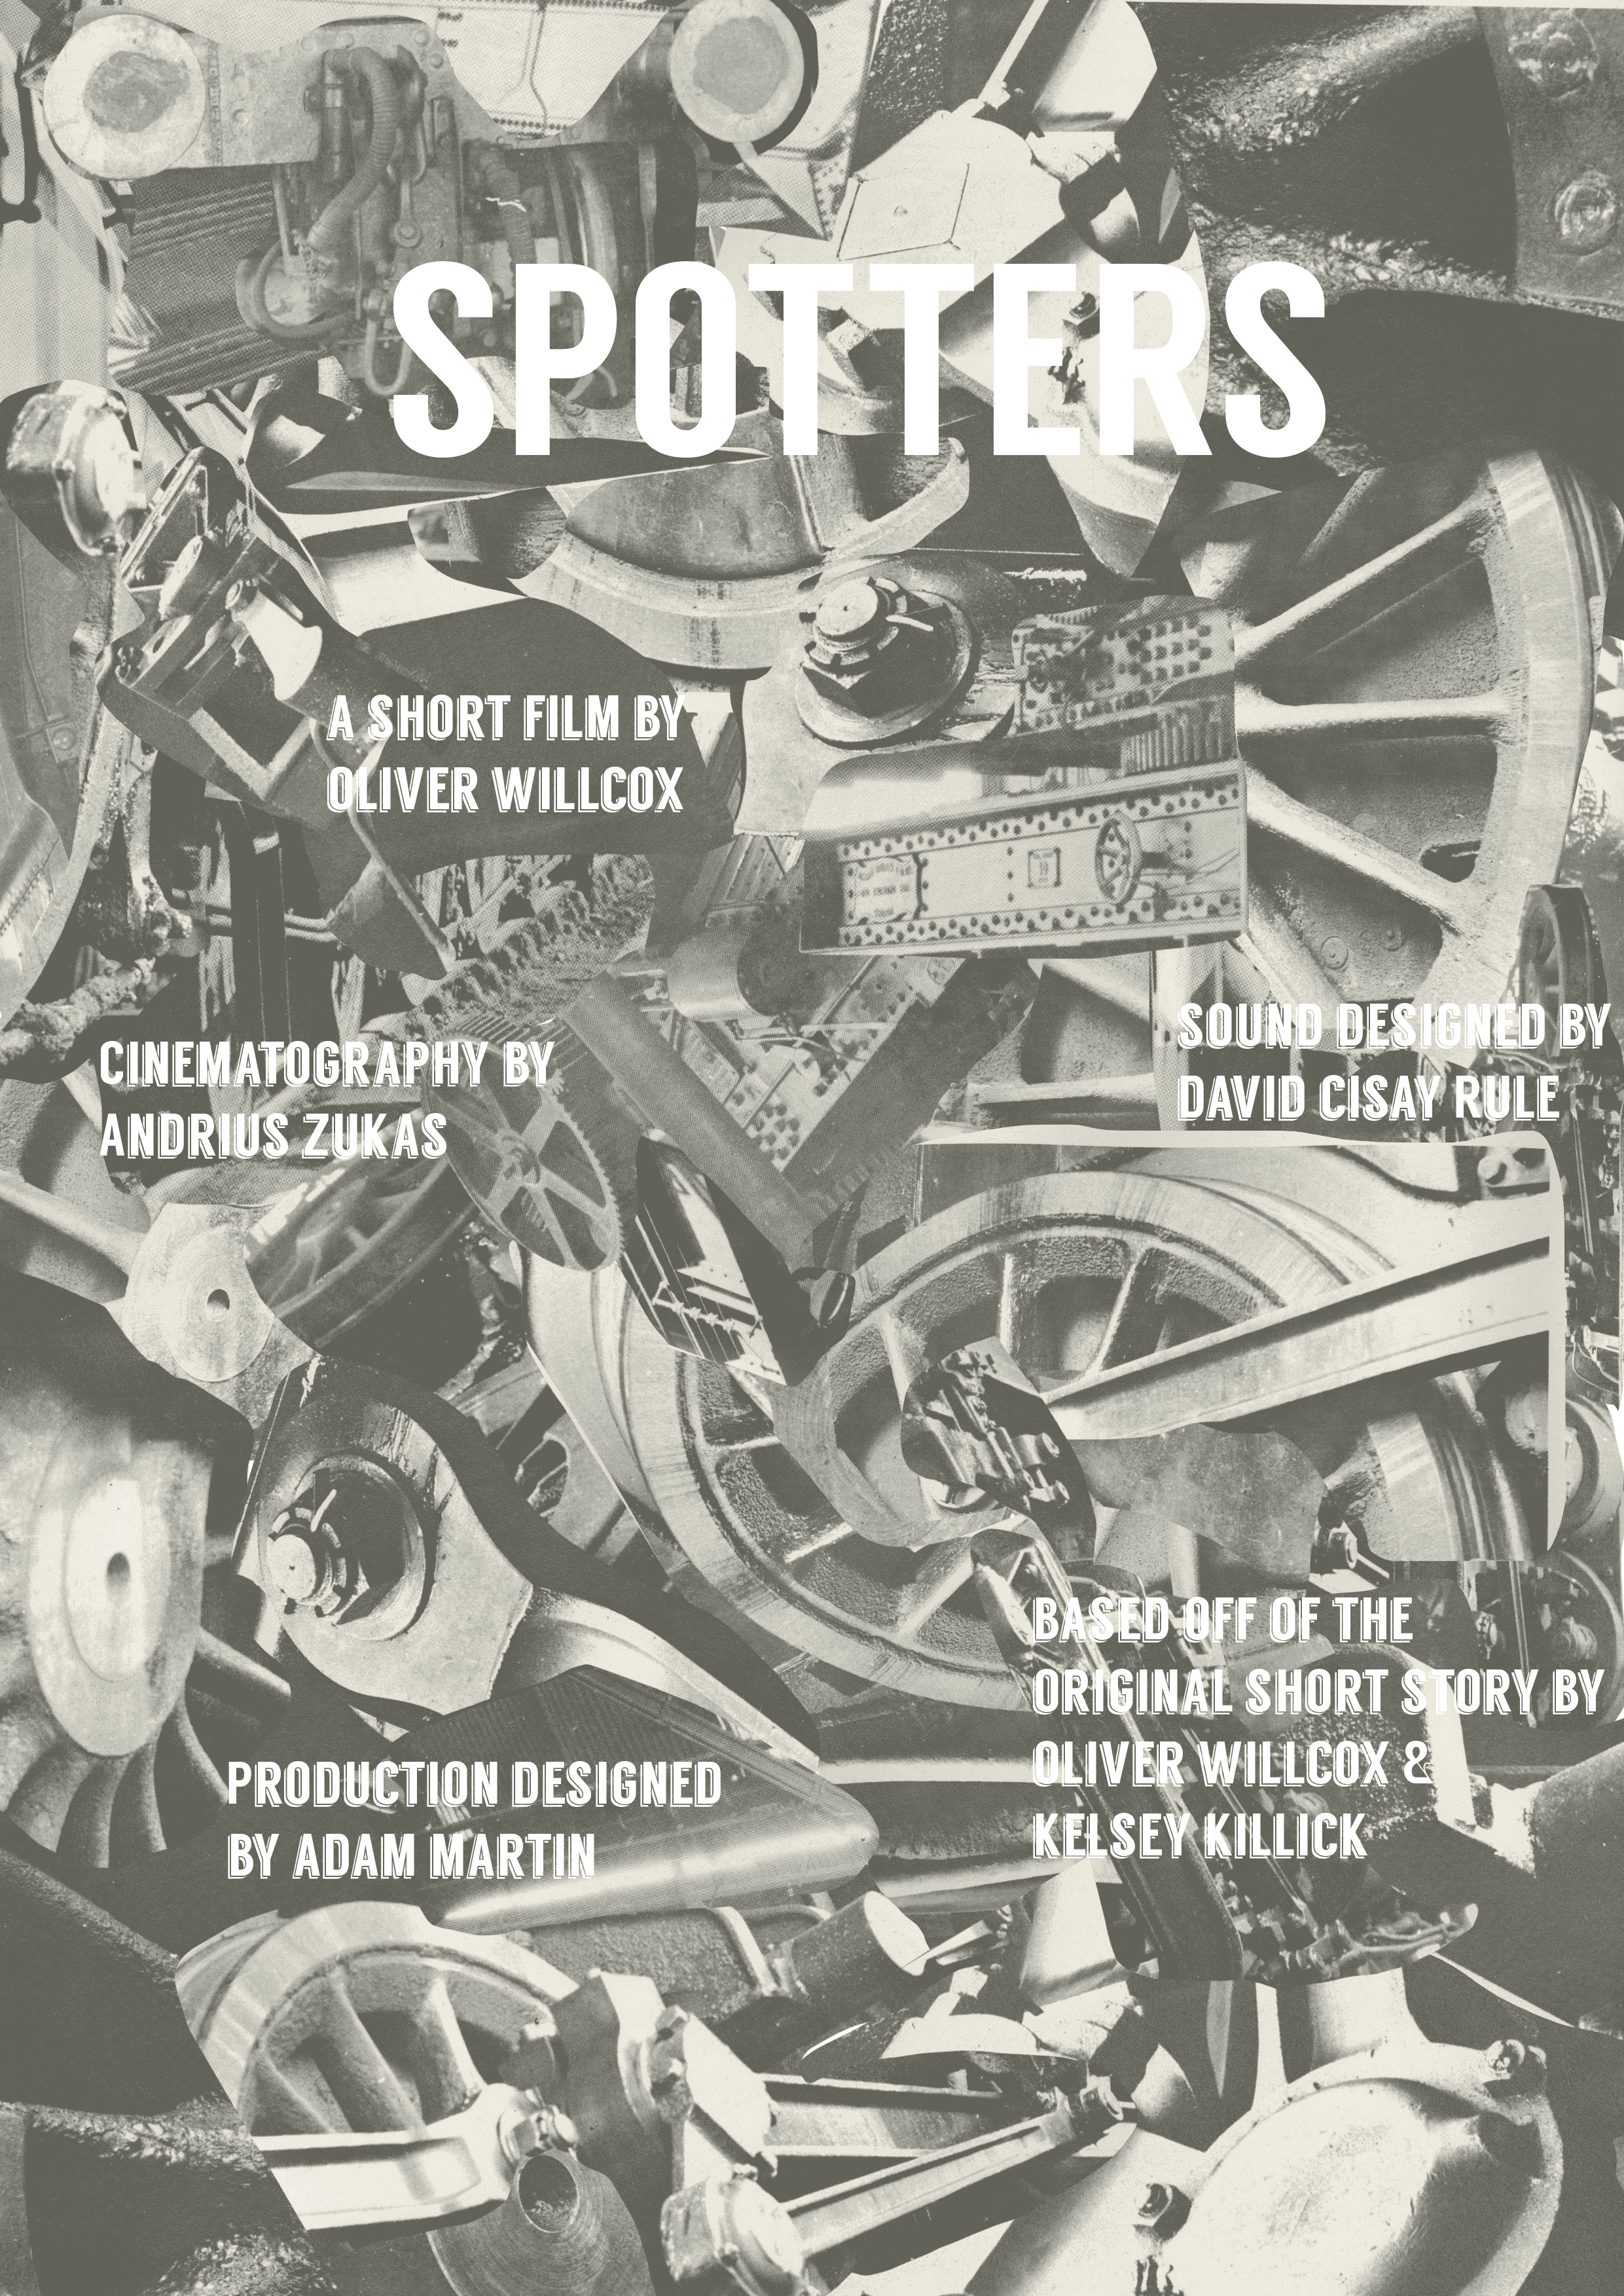 'Spotters' Film Poster. Designed by Oliver Willcox